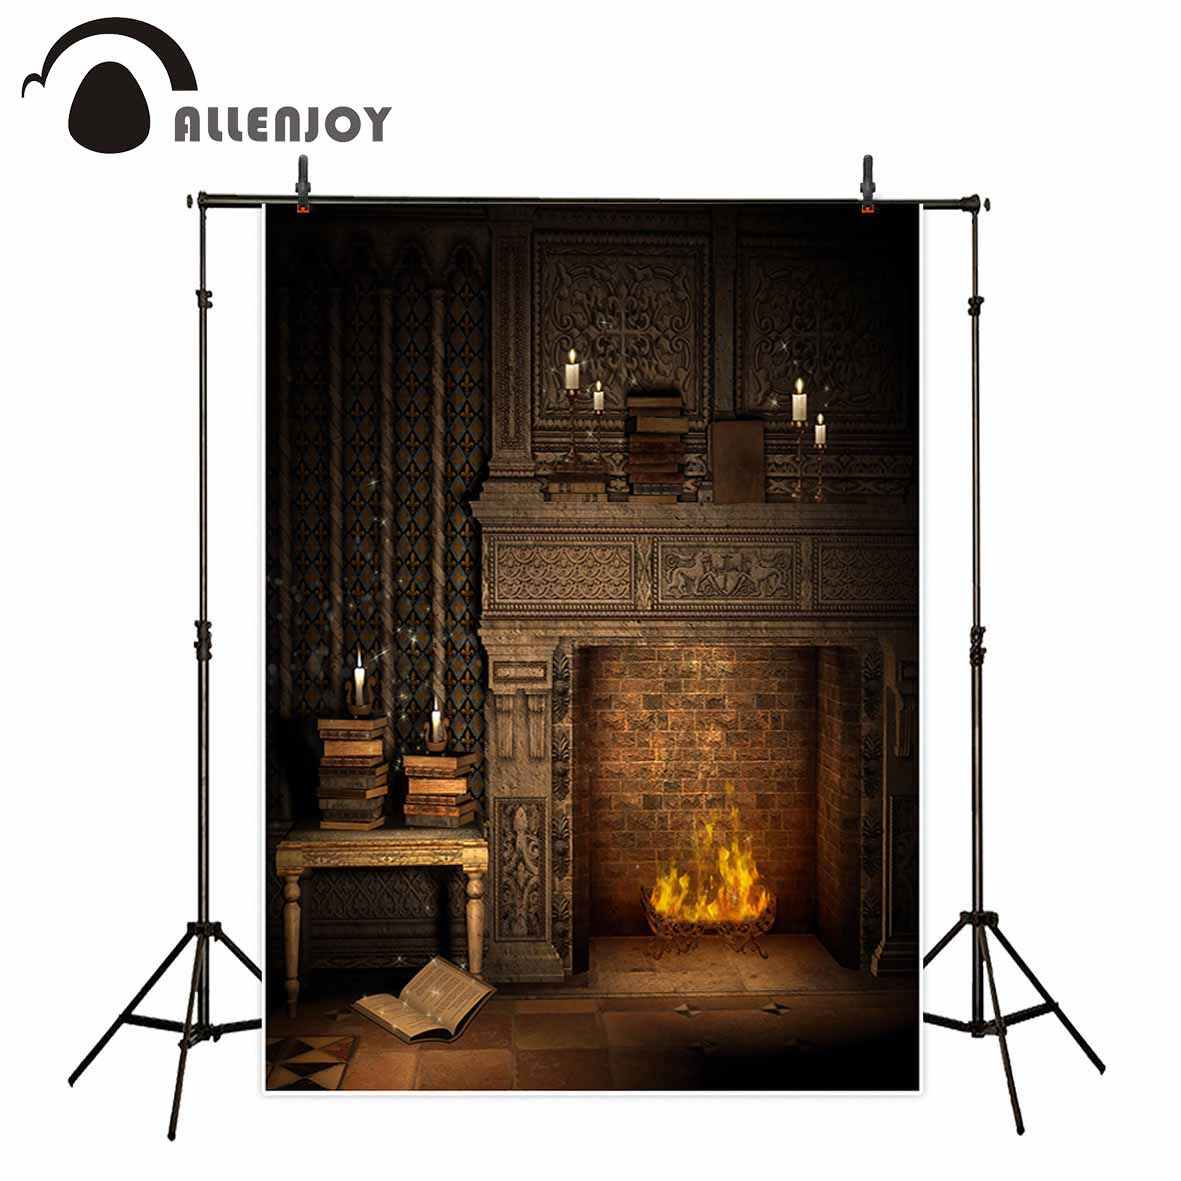 Allenjoy photography backdrop fireplace Candle books flame European style vintage background for photo studio camera fotografica allenjoy photography backdrop library books student child newborn photo studio photocall background original design